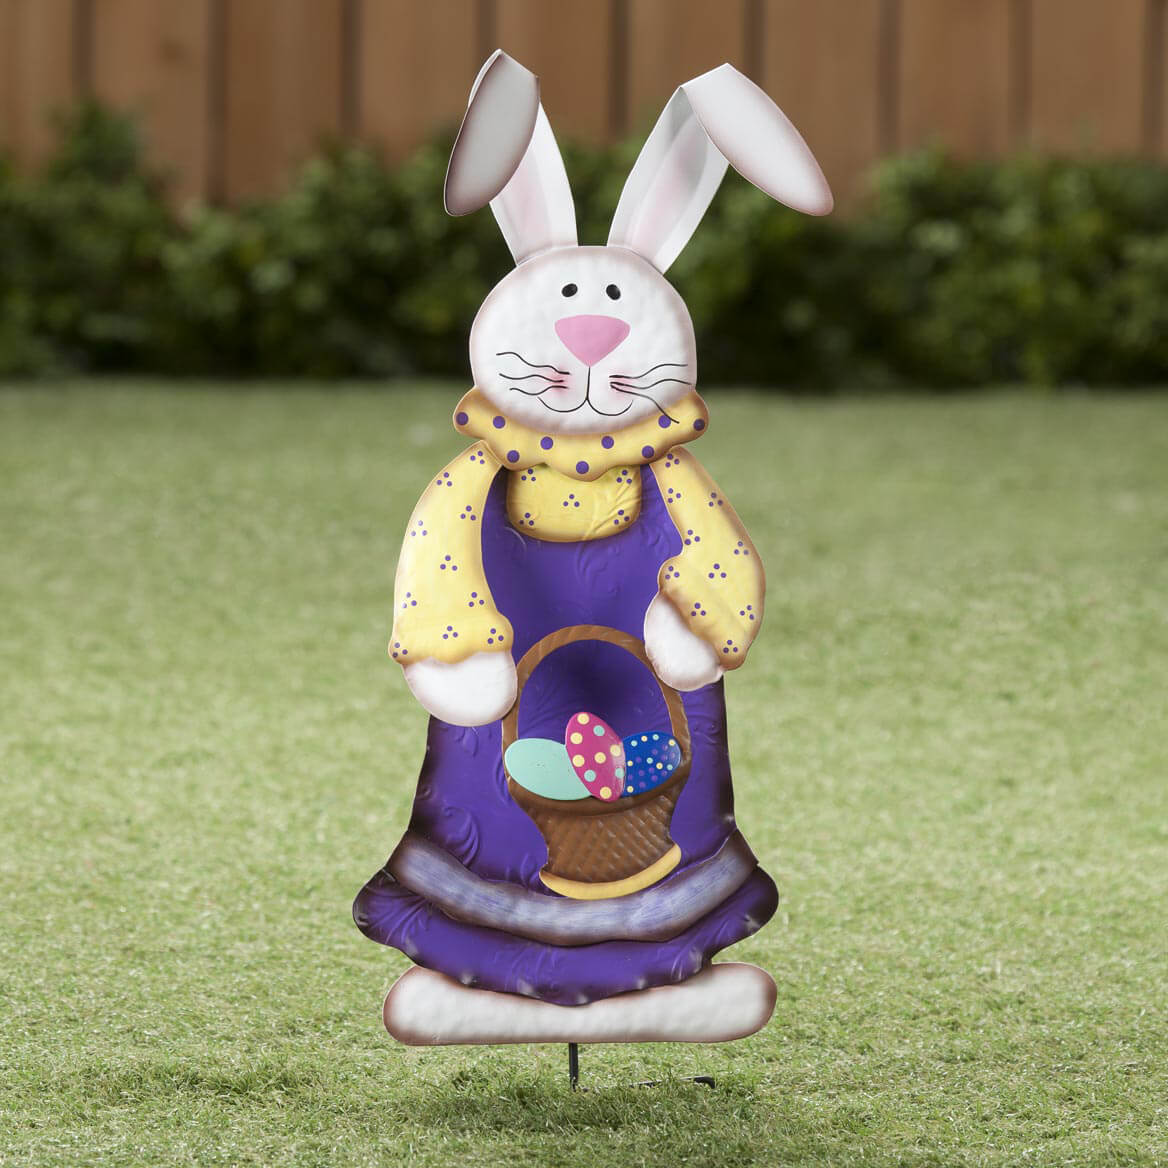 Charming Metal Easter Bunny Girl Garden Stake